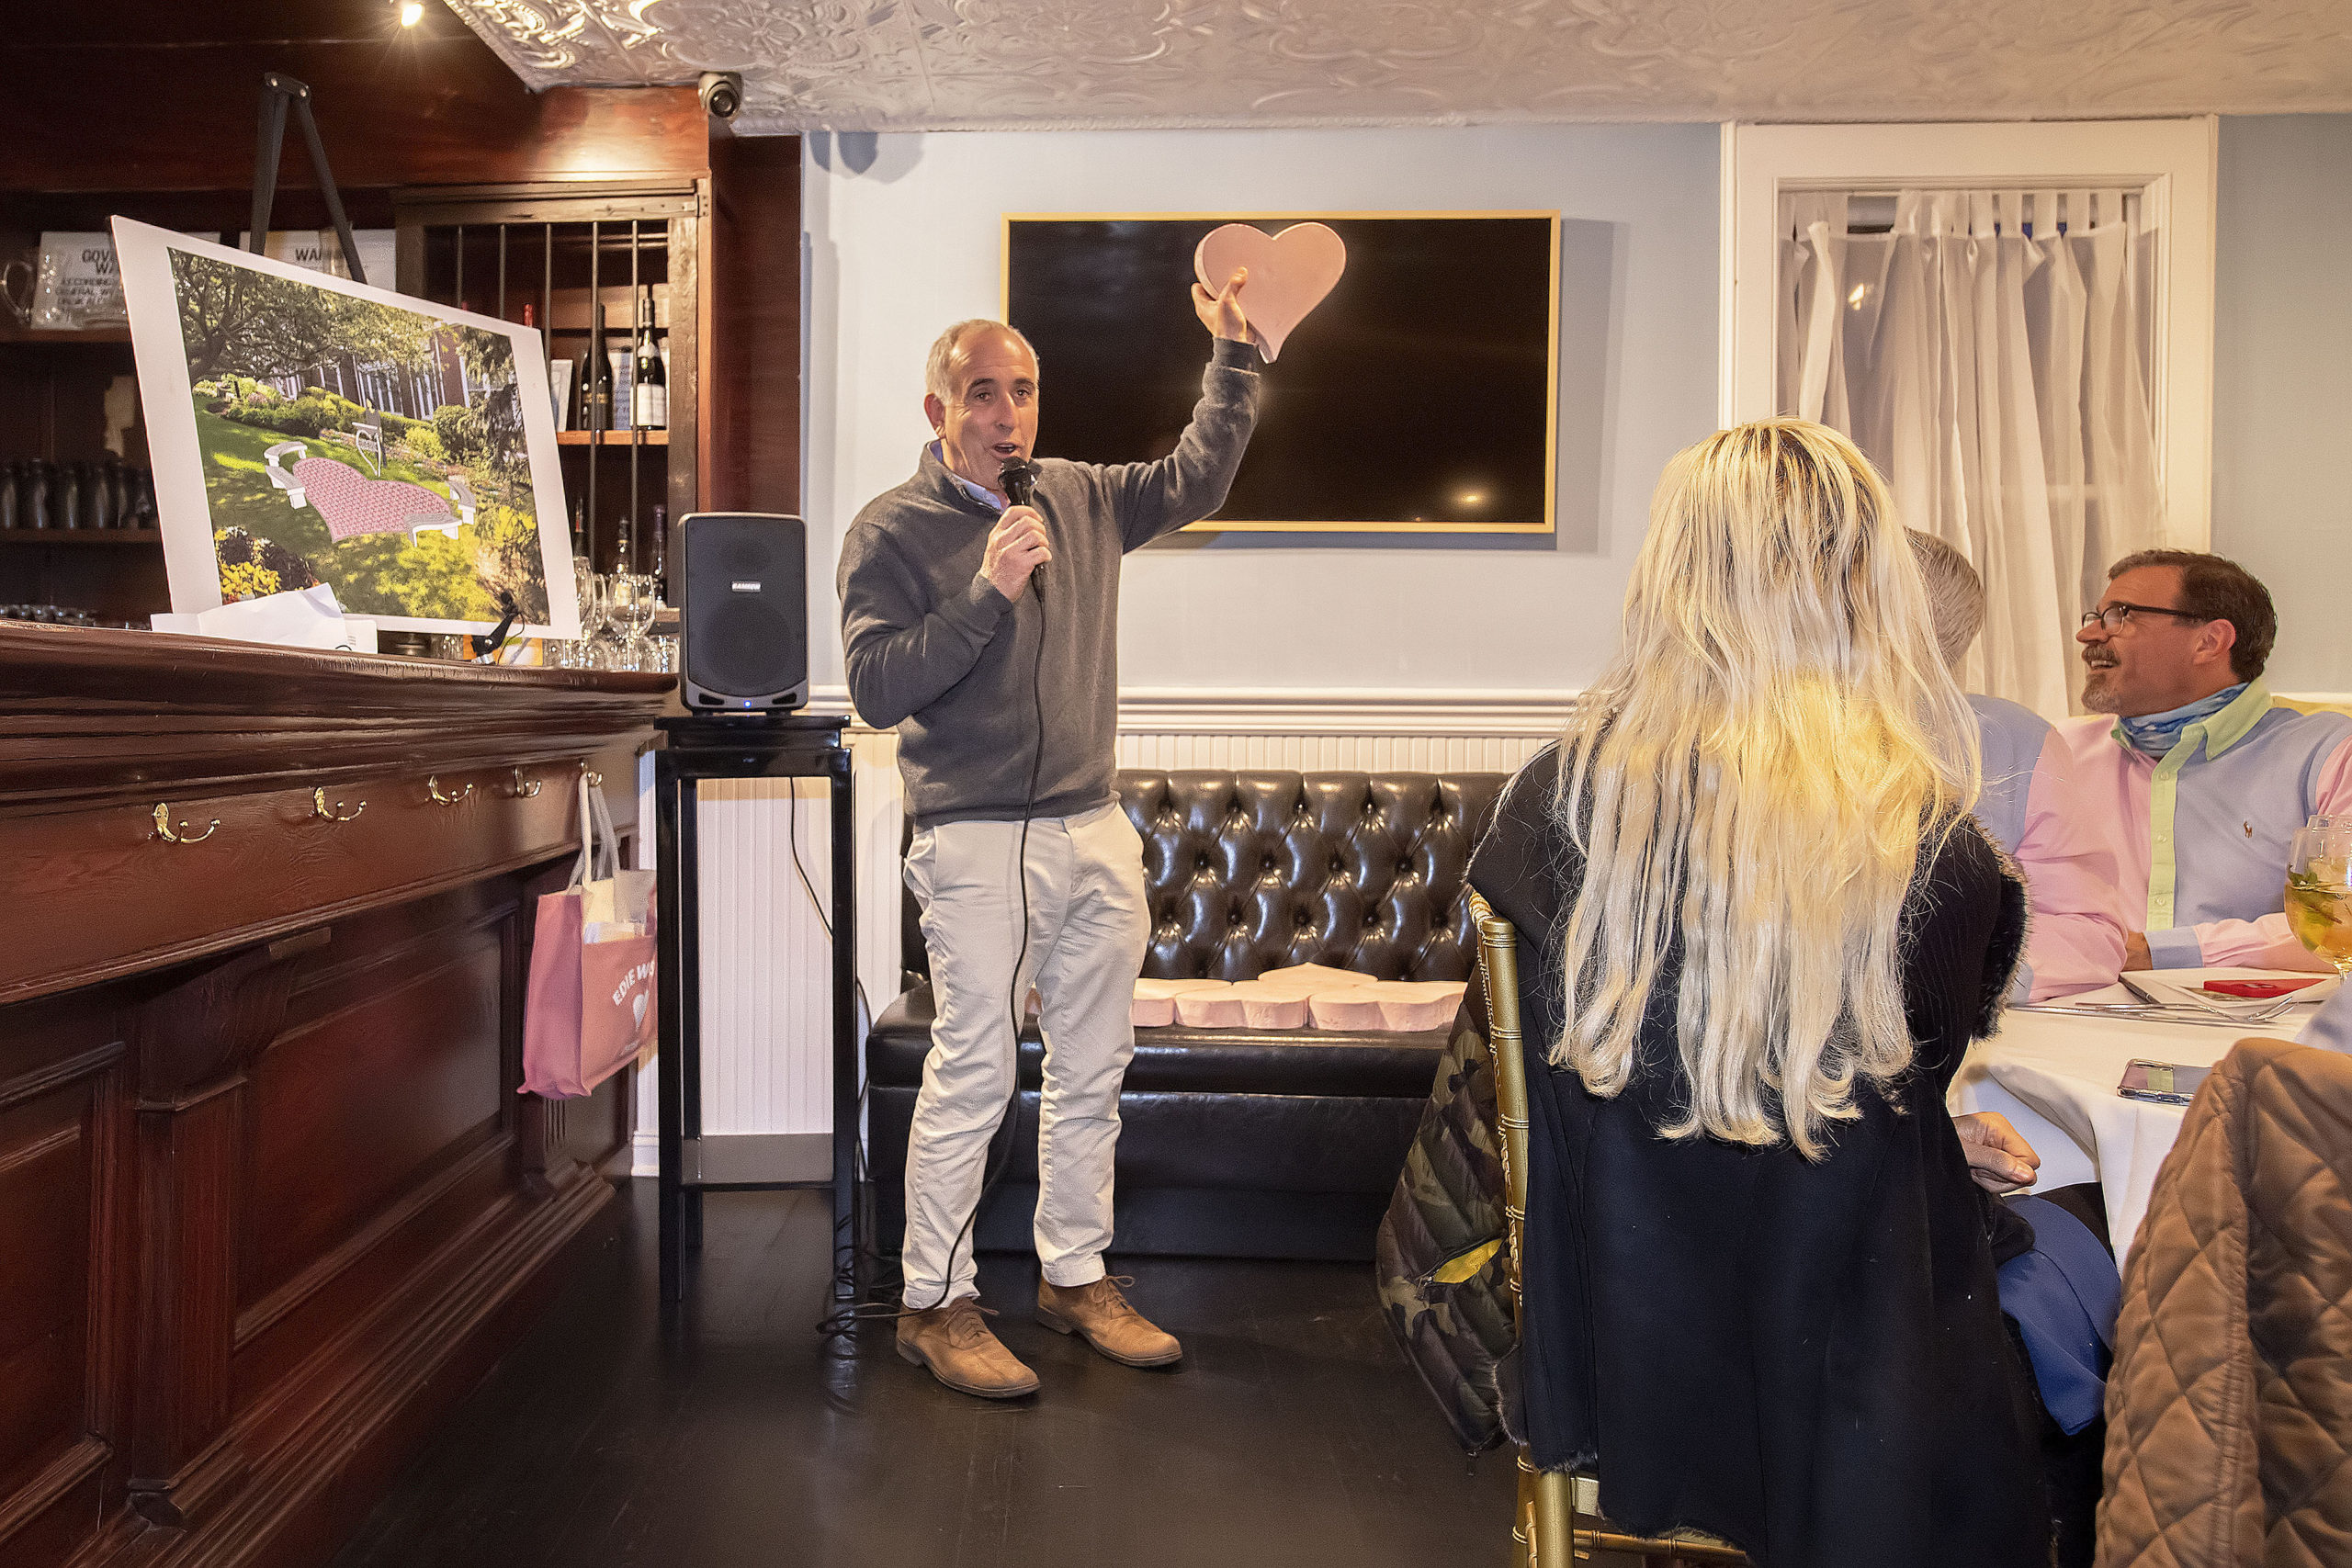 Southampton Town Supervisor Jay Schneiderman introduces announces the Edie Windsor Heart at Southampton Town Hall during a ceremony at the Union Steak & Sushi restaurant in Southampton on Thursday, April 22.   MICHAEL HELLER